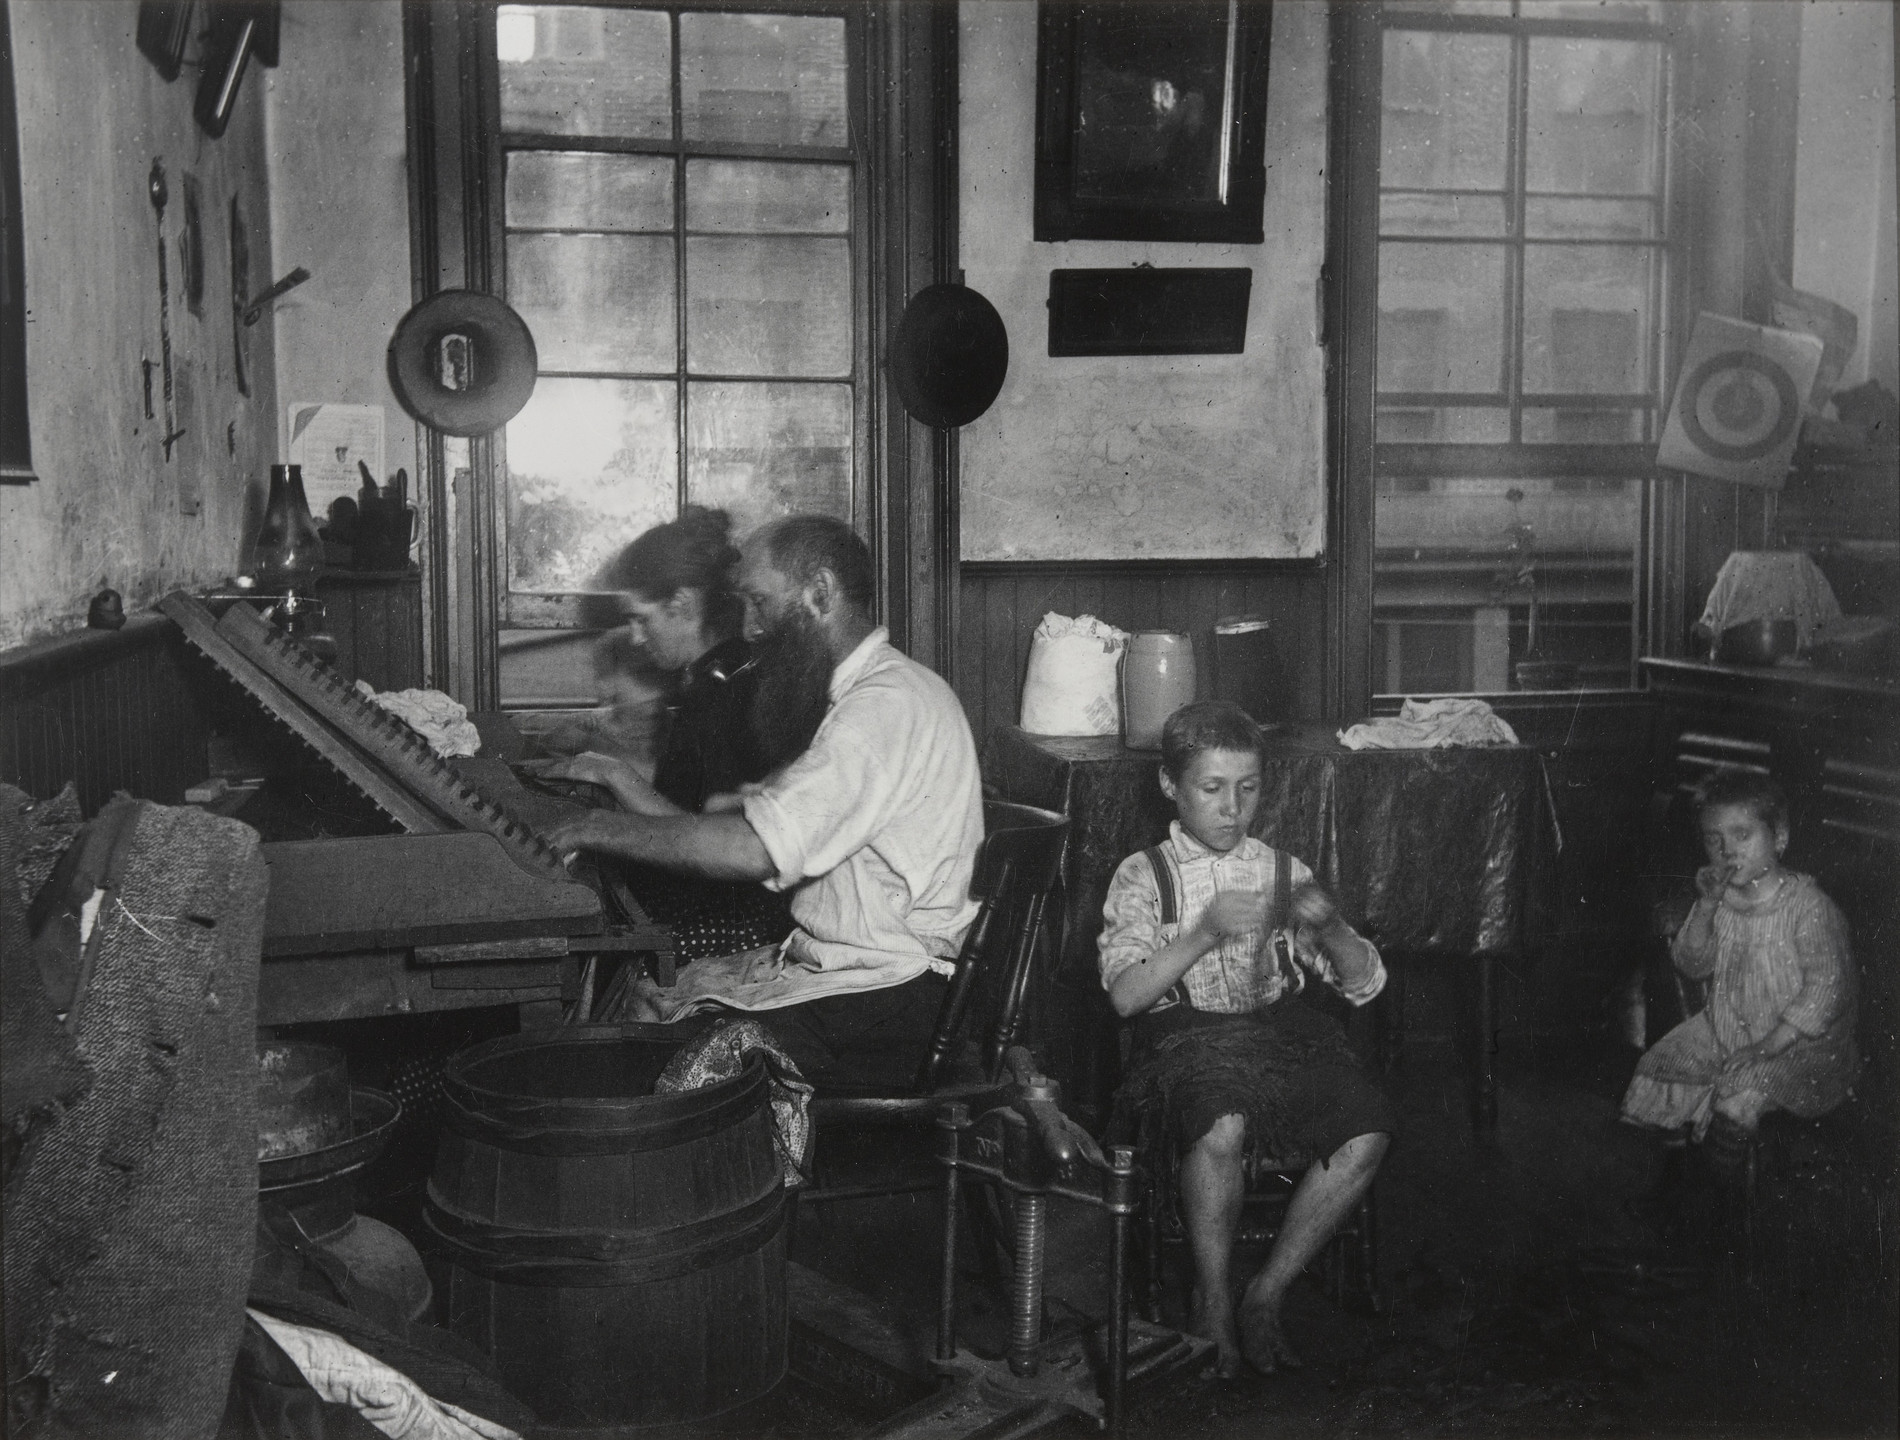 Jacob August Riis. Bohemian Cigarmakers at Work in Their Tenement. 1889